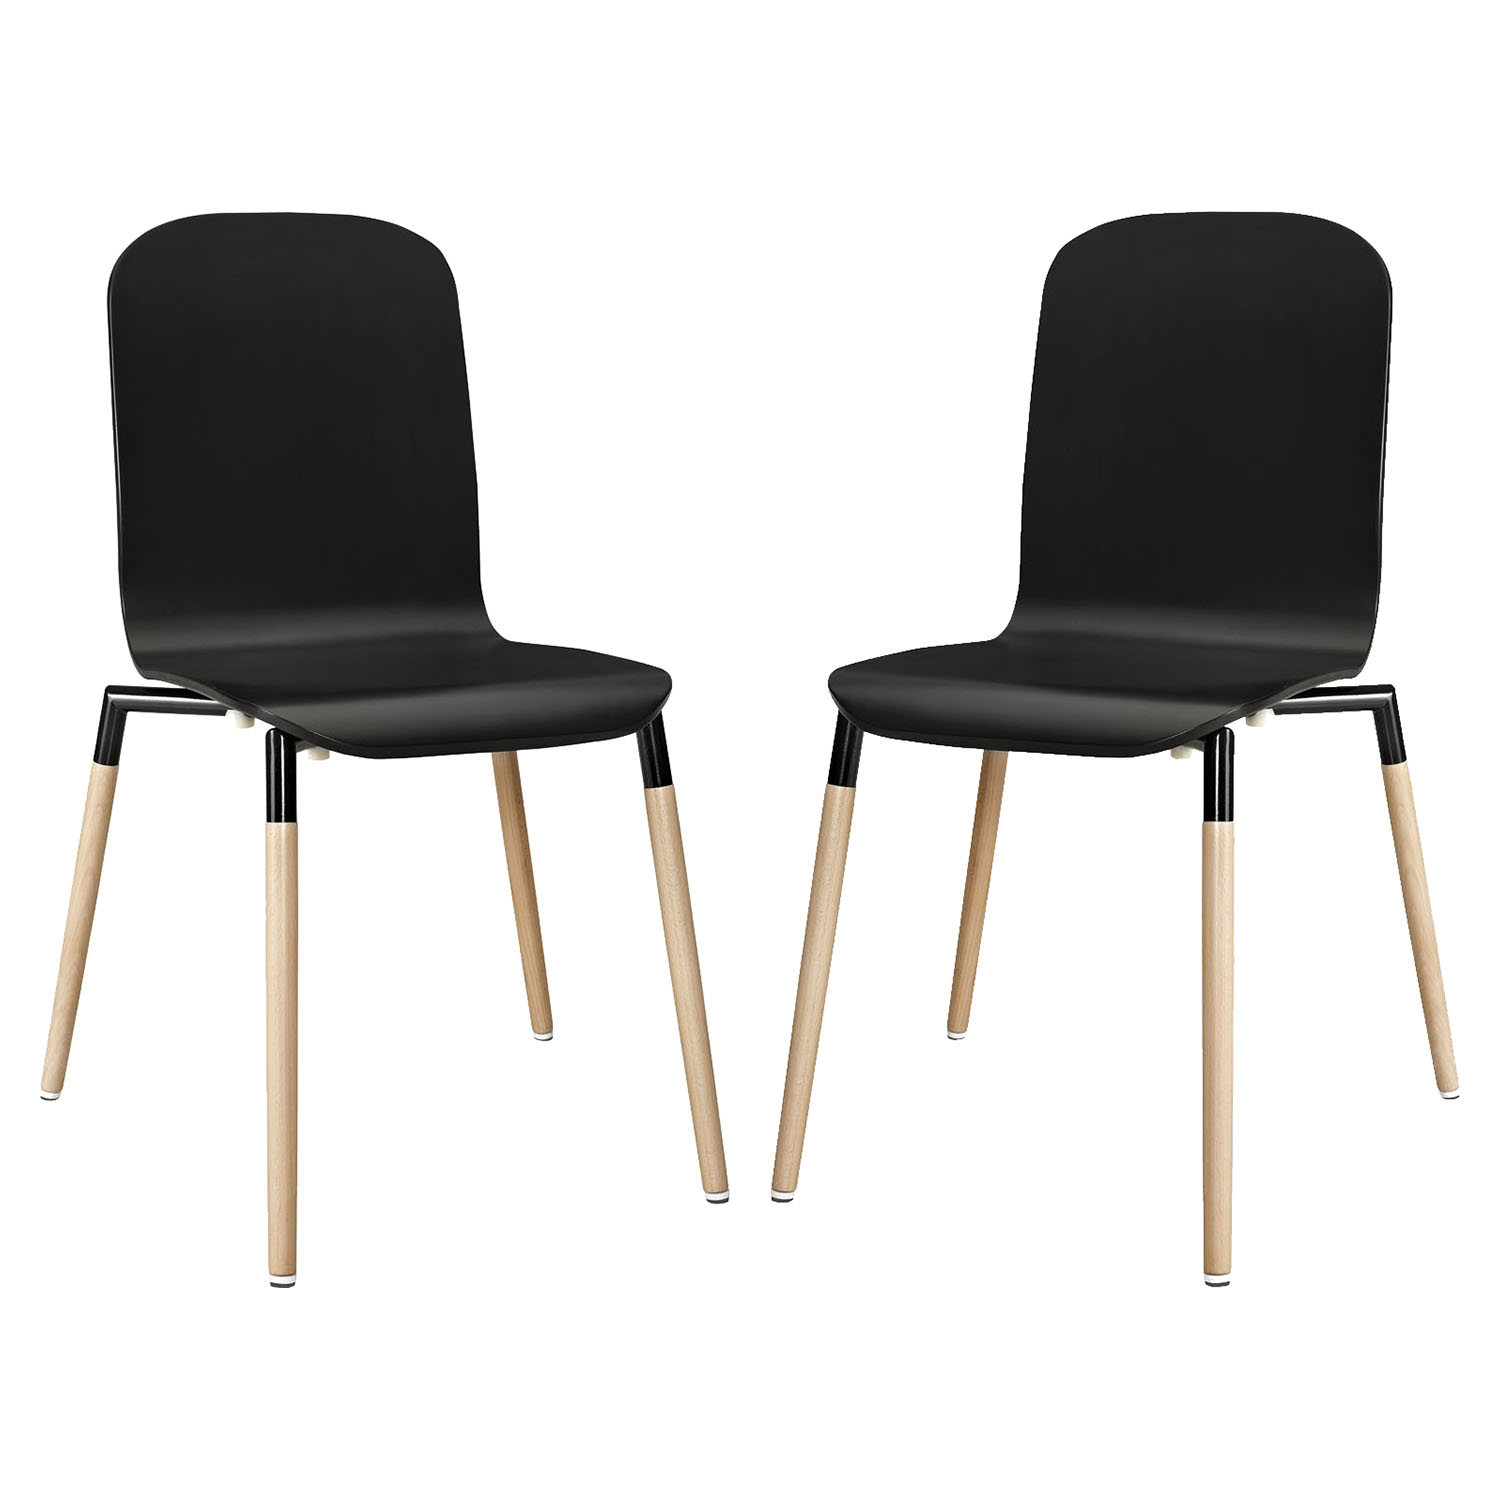 Stack Dining Chair - Wood Legs, Black (Set of 2) - EEI-1372-BLK